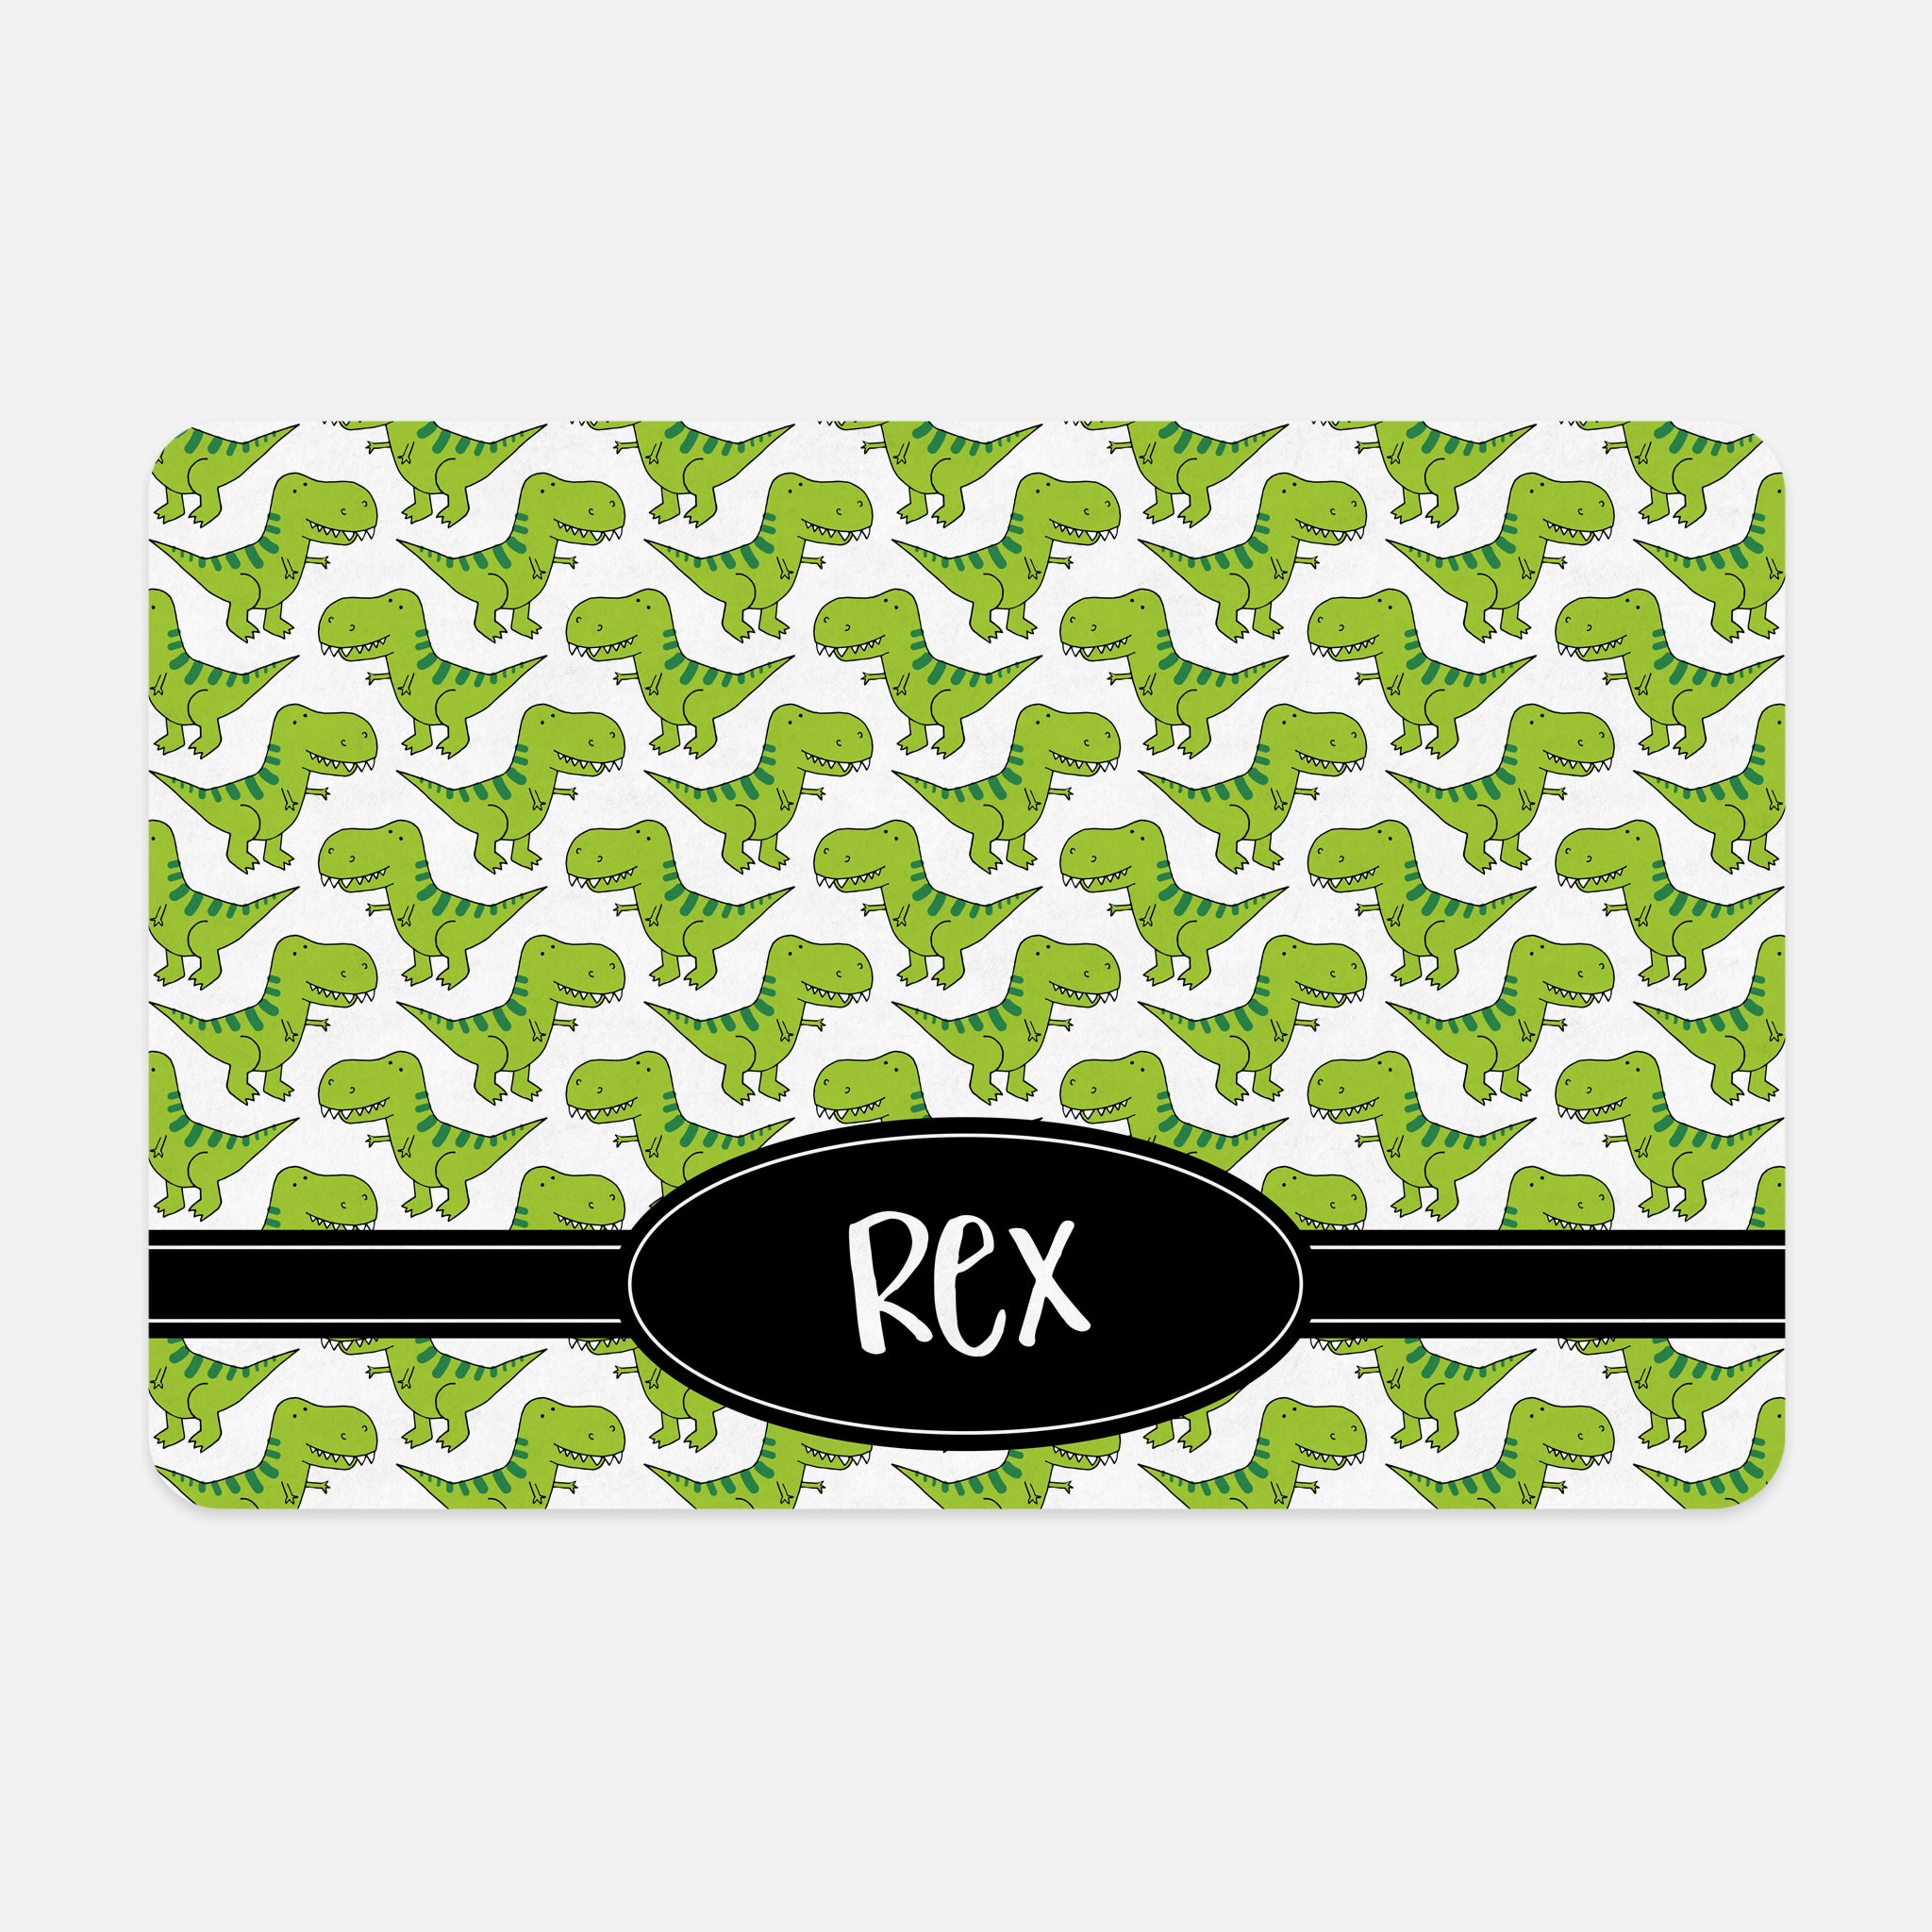 T-Rex Dinosaur Tyrannosaurus Rex Pattern Bright Green Black White Personalized Pet Mat for Cat Dog Feeding Mat for Food Bowls Pet Supply Accessory - By Happy Cat Prints